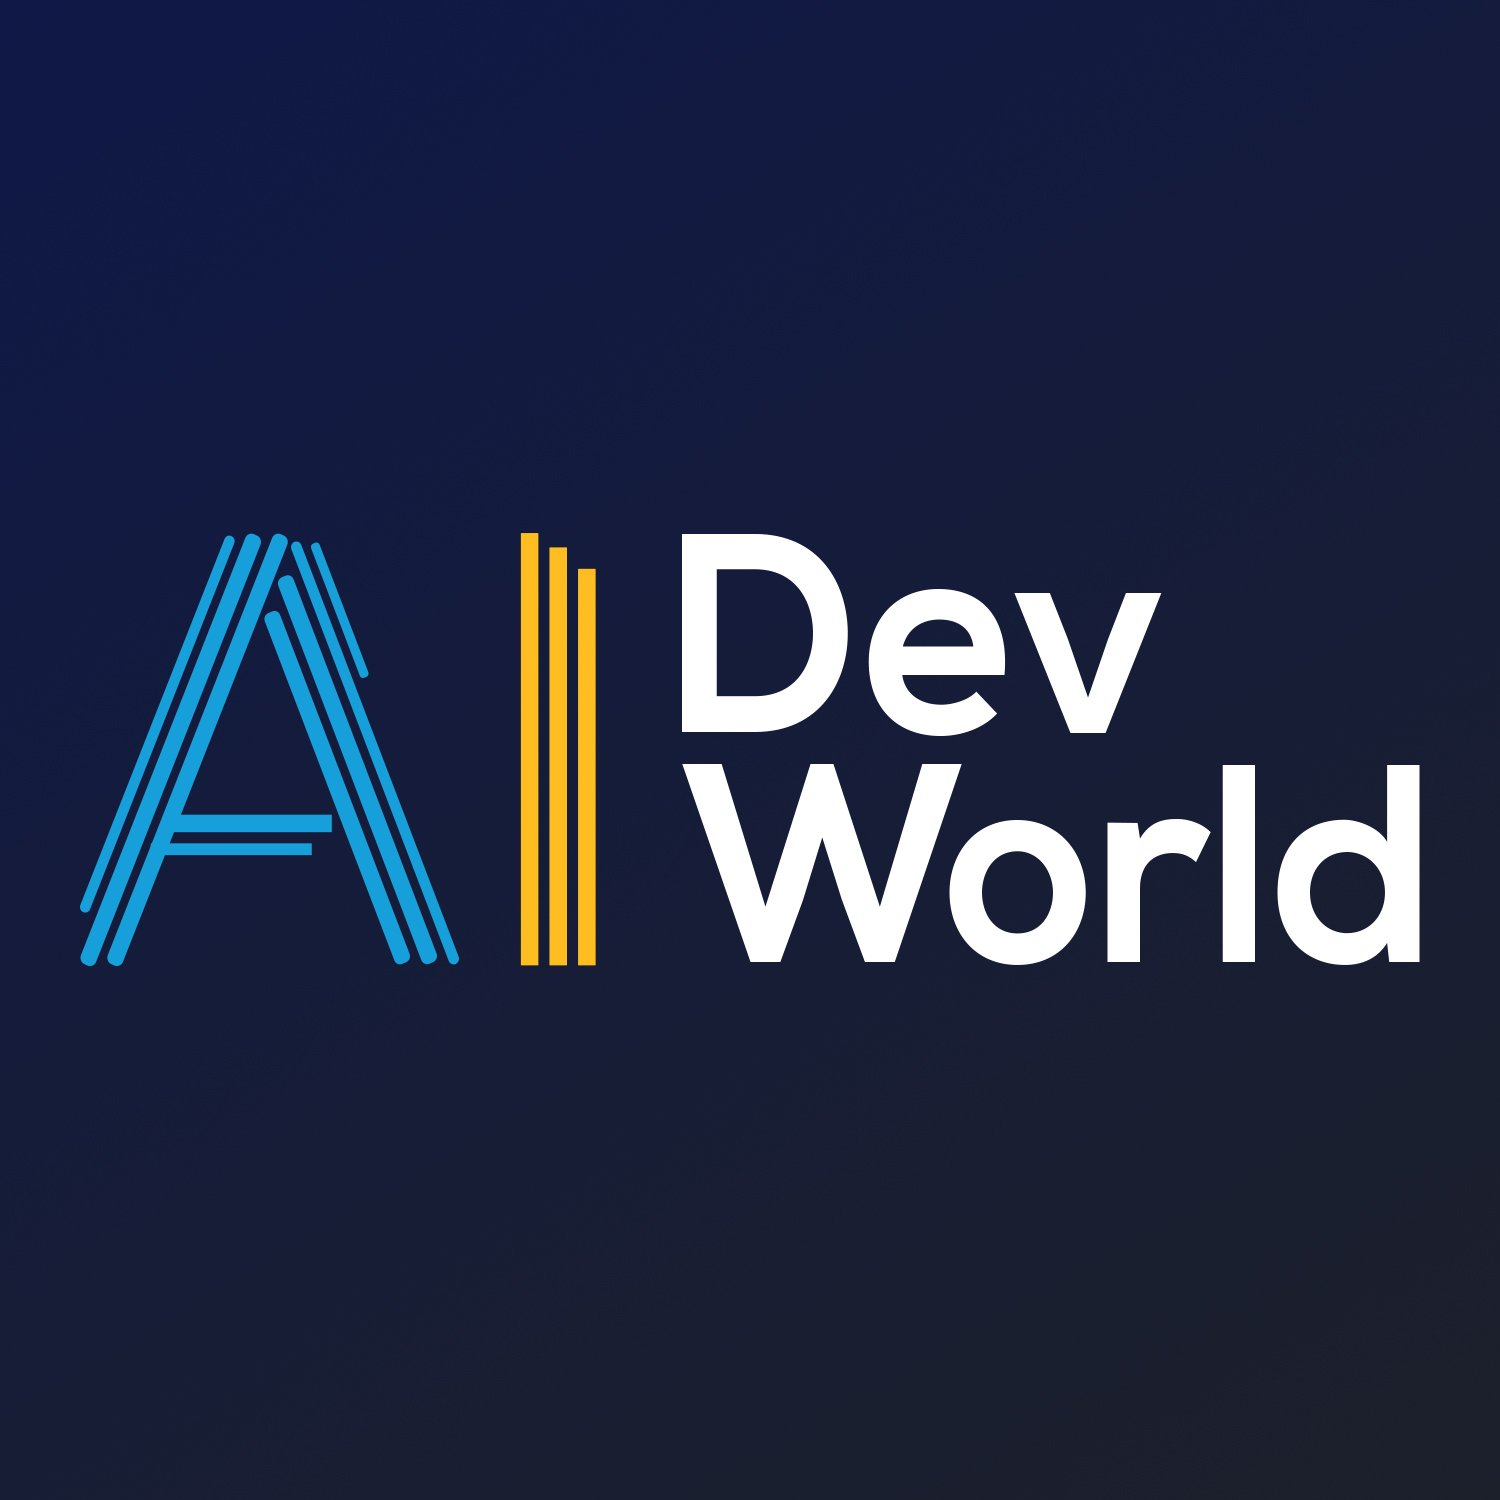 AI Dev World